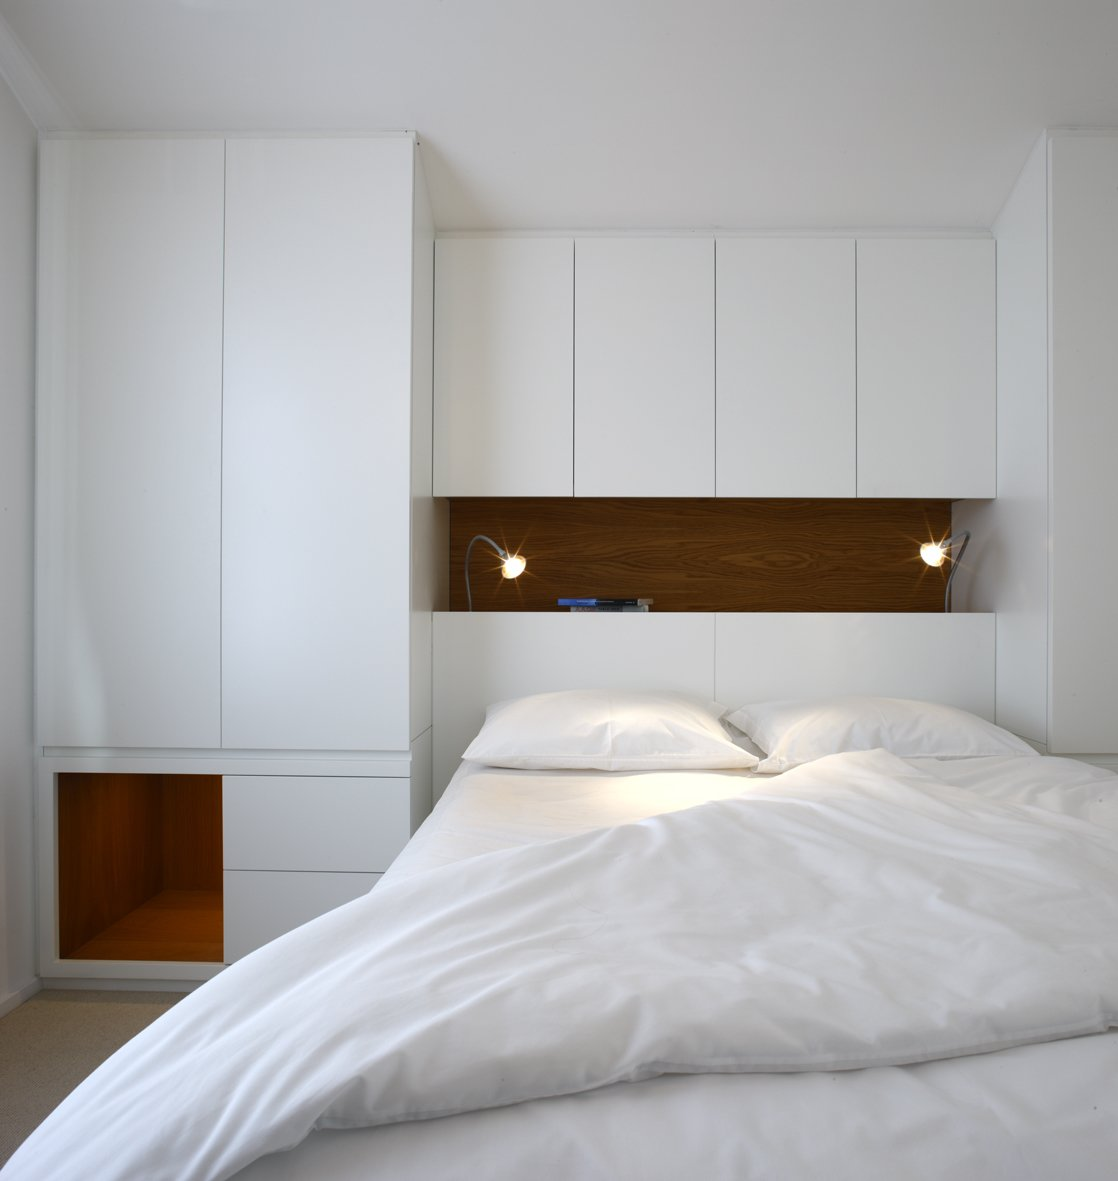 Bedroom, Bed, Wall Lighting, and Shelves  Elm Grove by Thompson + Baroni